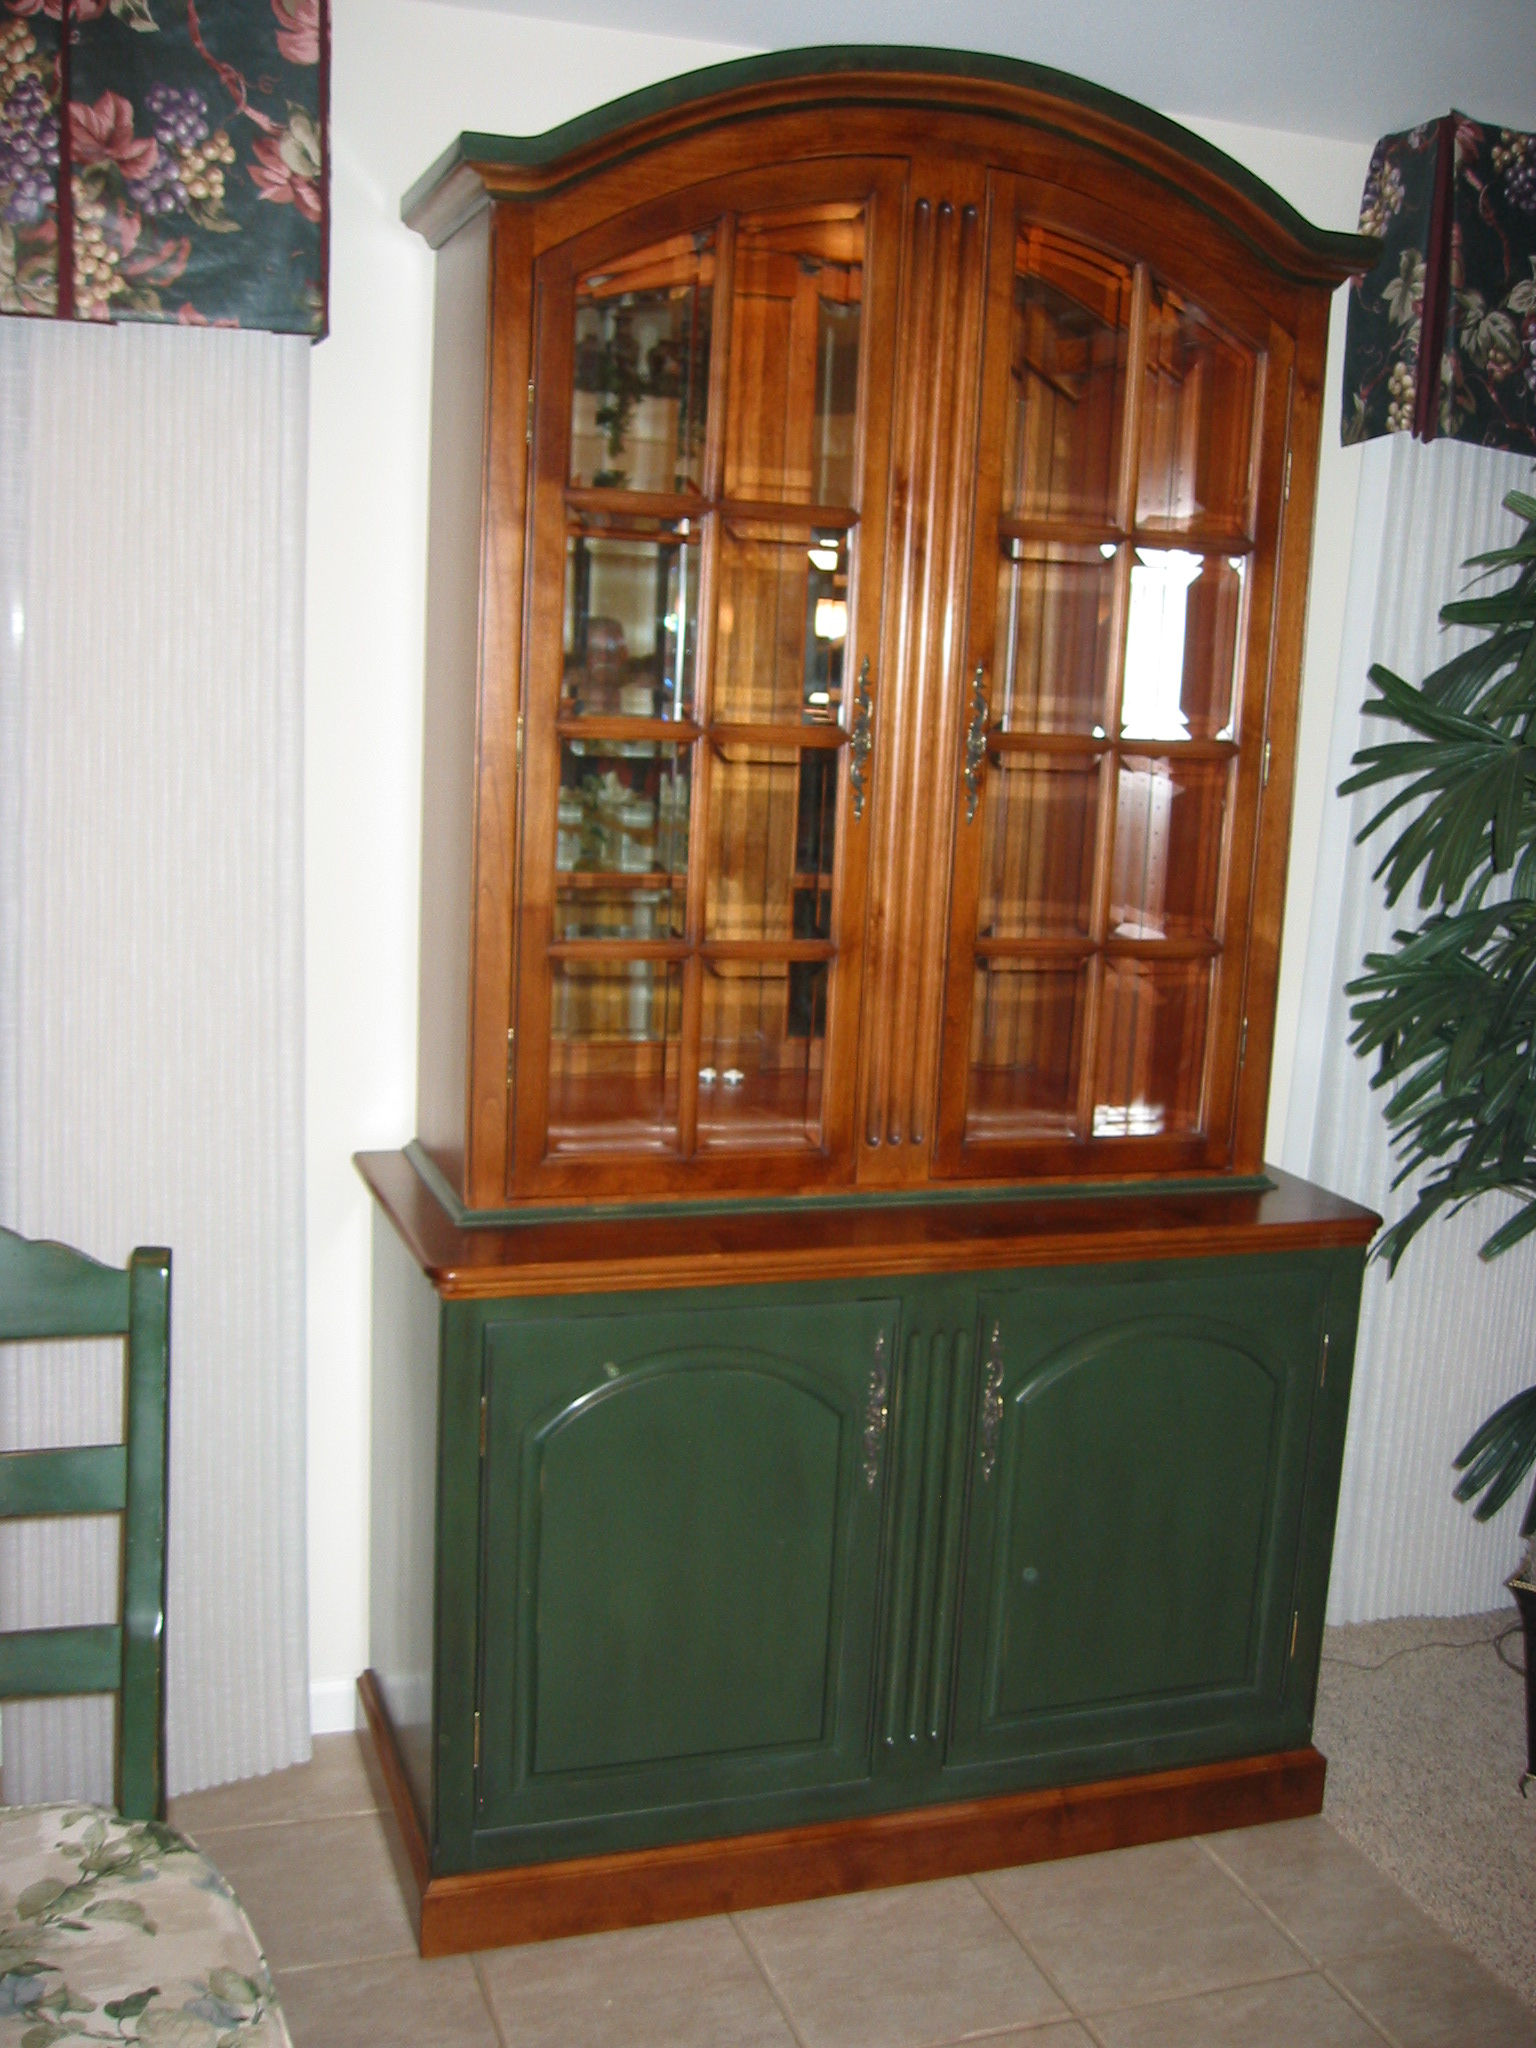 Cabinet that is custom made